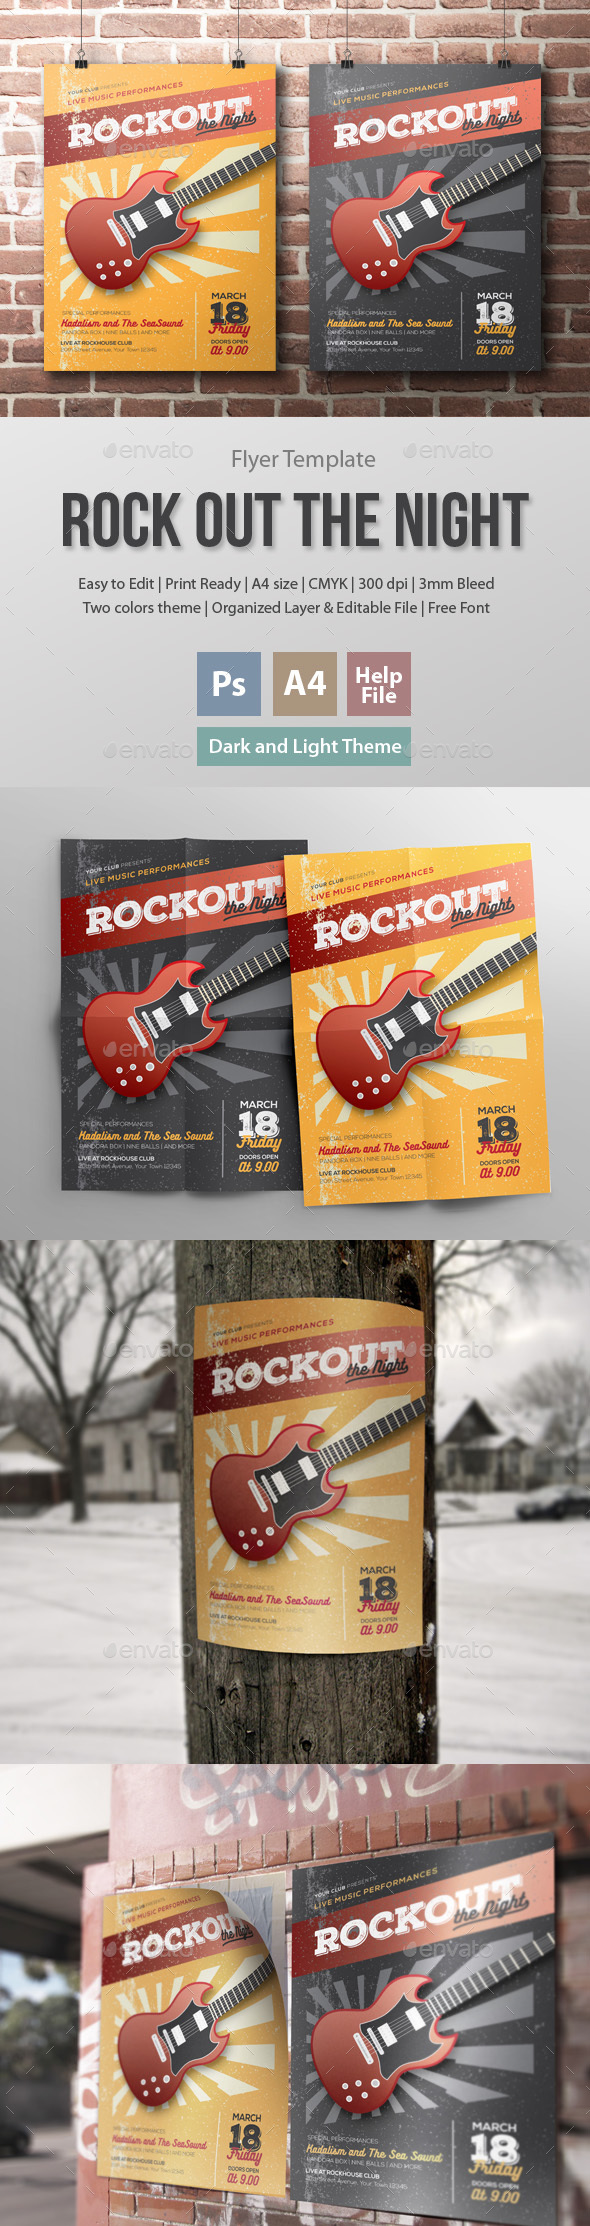 Rockout the Night Flyer Template - Clubs & Parties Events